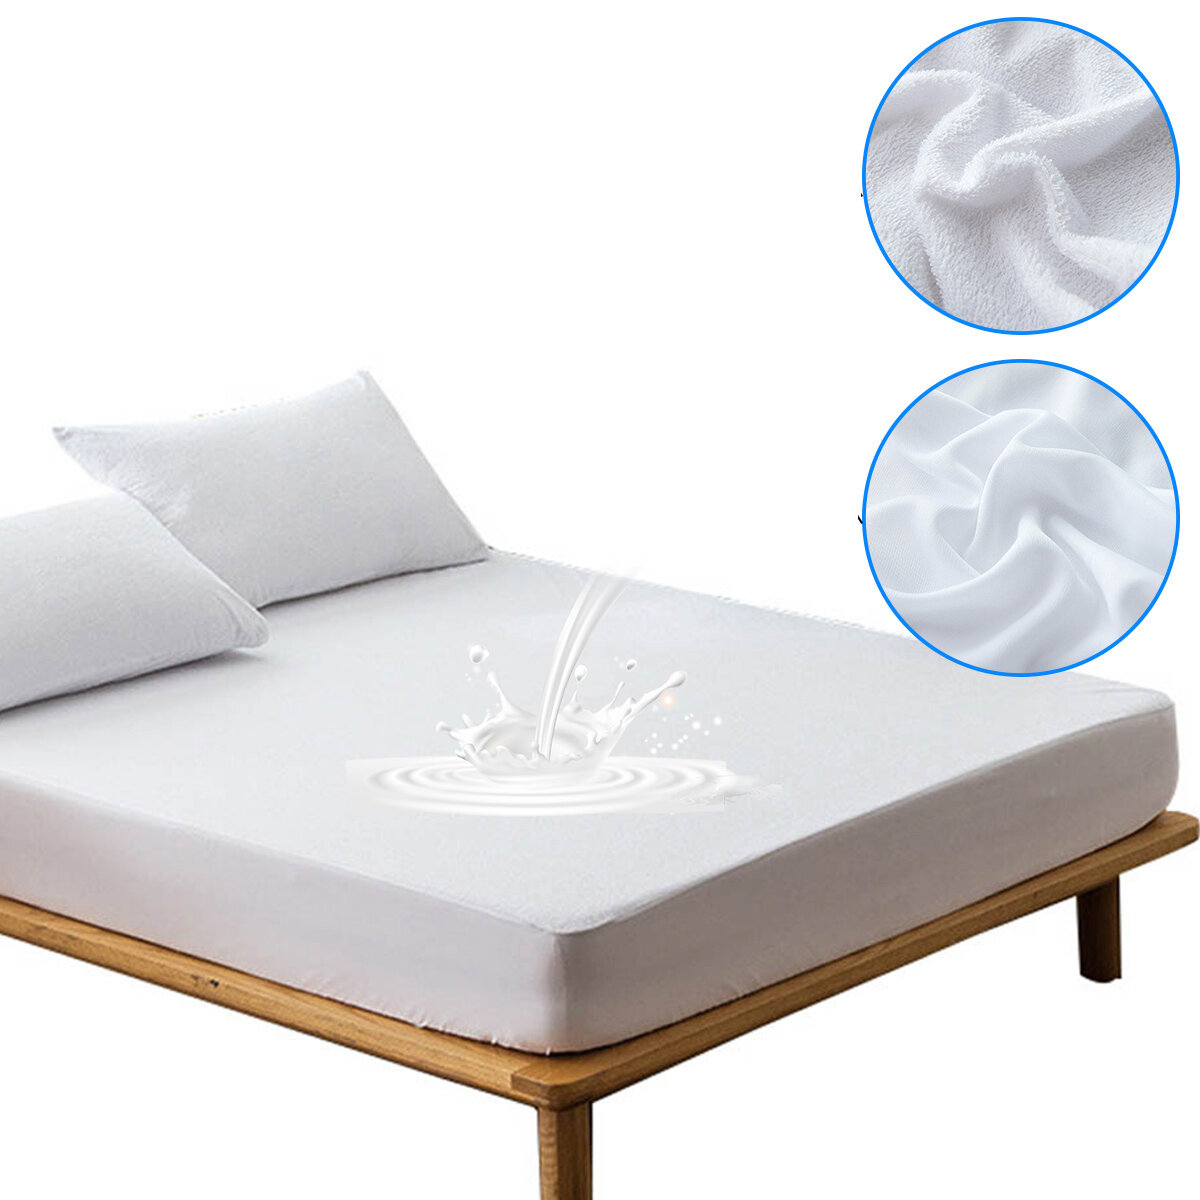 Waterproof Bed Fitted Sheet Cotton Terry Fabric Waterproof Breathable Bed Sheet with Elastic White Terry Mattress Cover